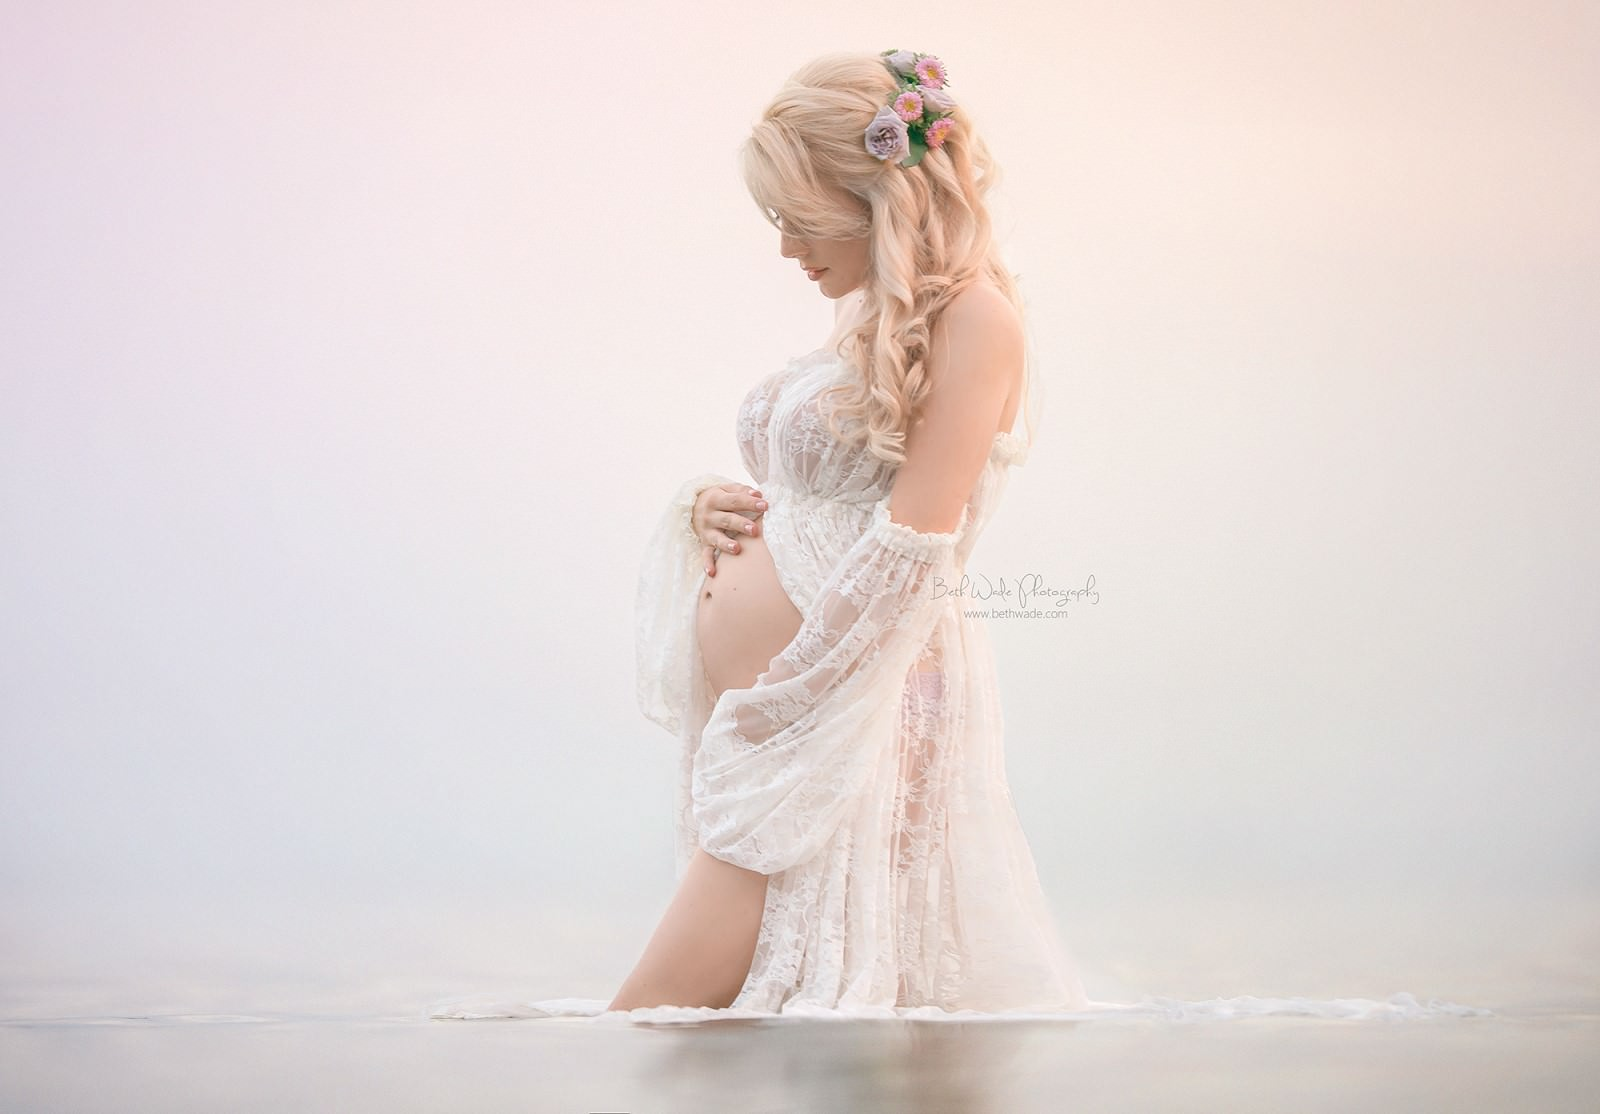 maternity valerie ivory beth wade photography web res summer 2016 favorite sew trendy image